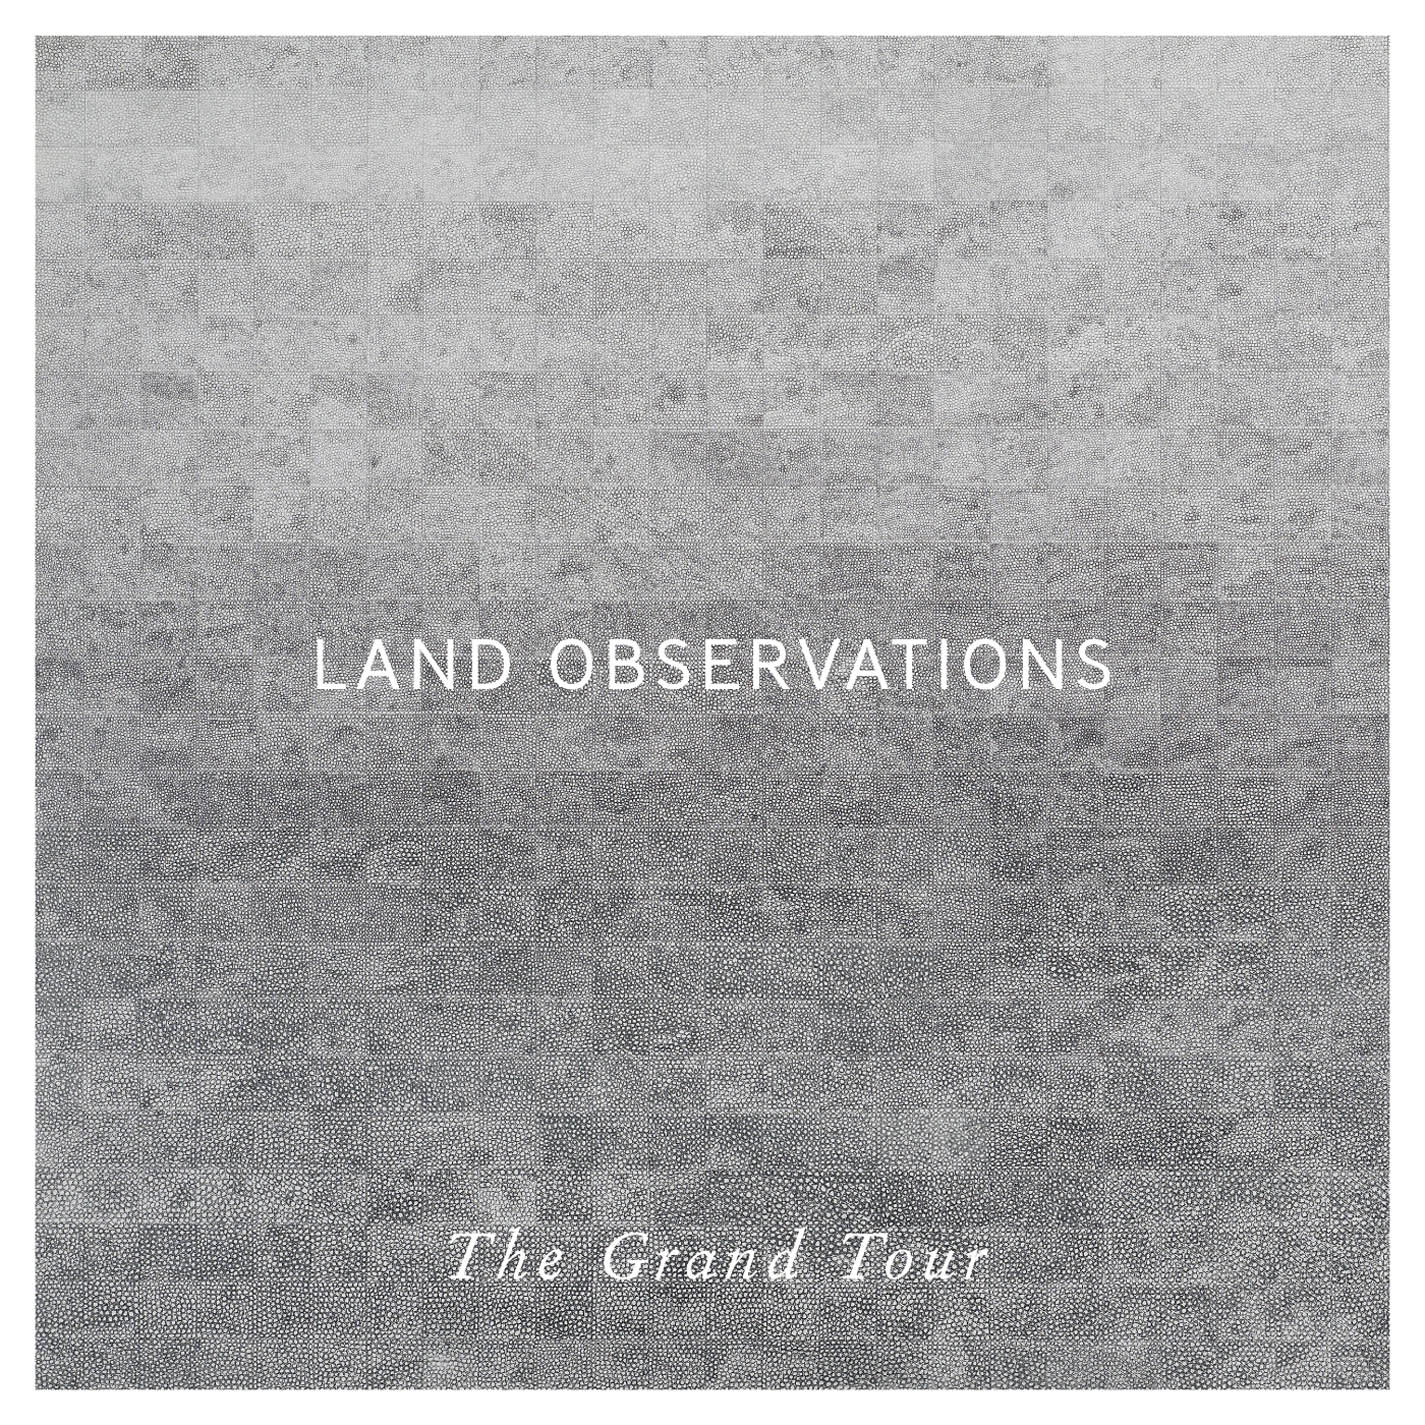 Land-Observations - The Grand Tour